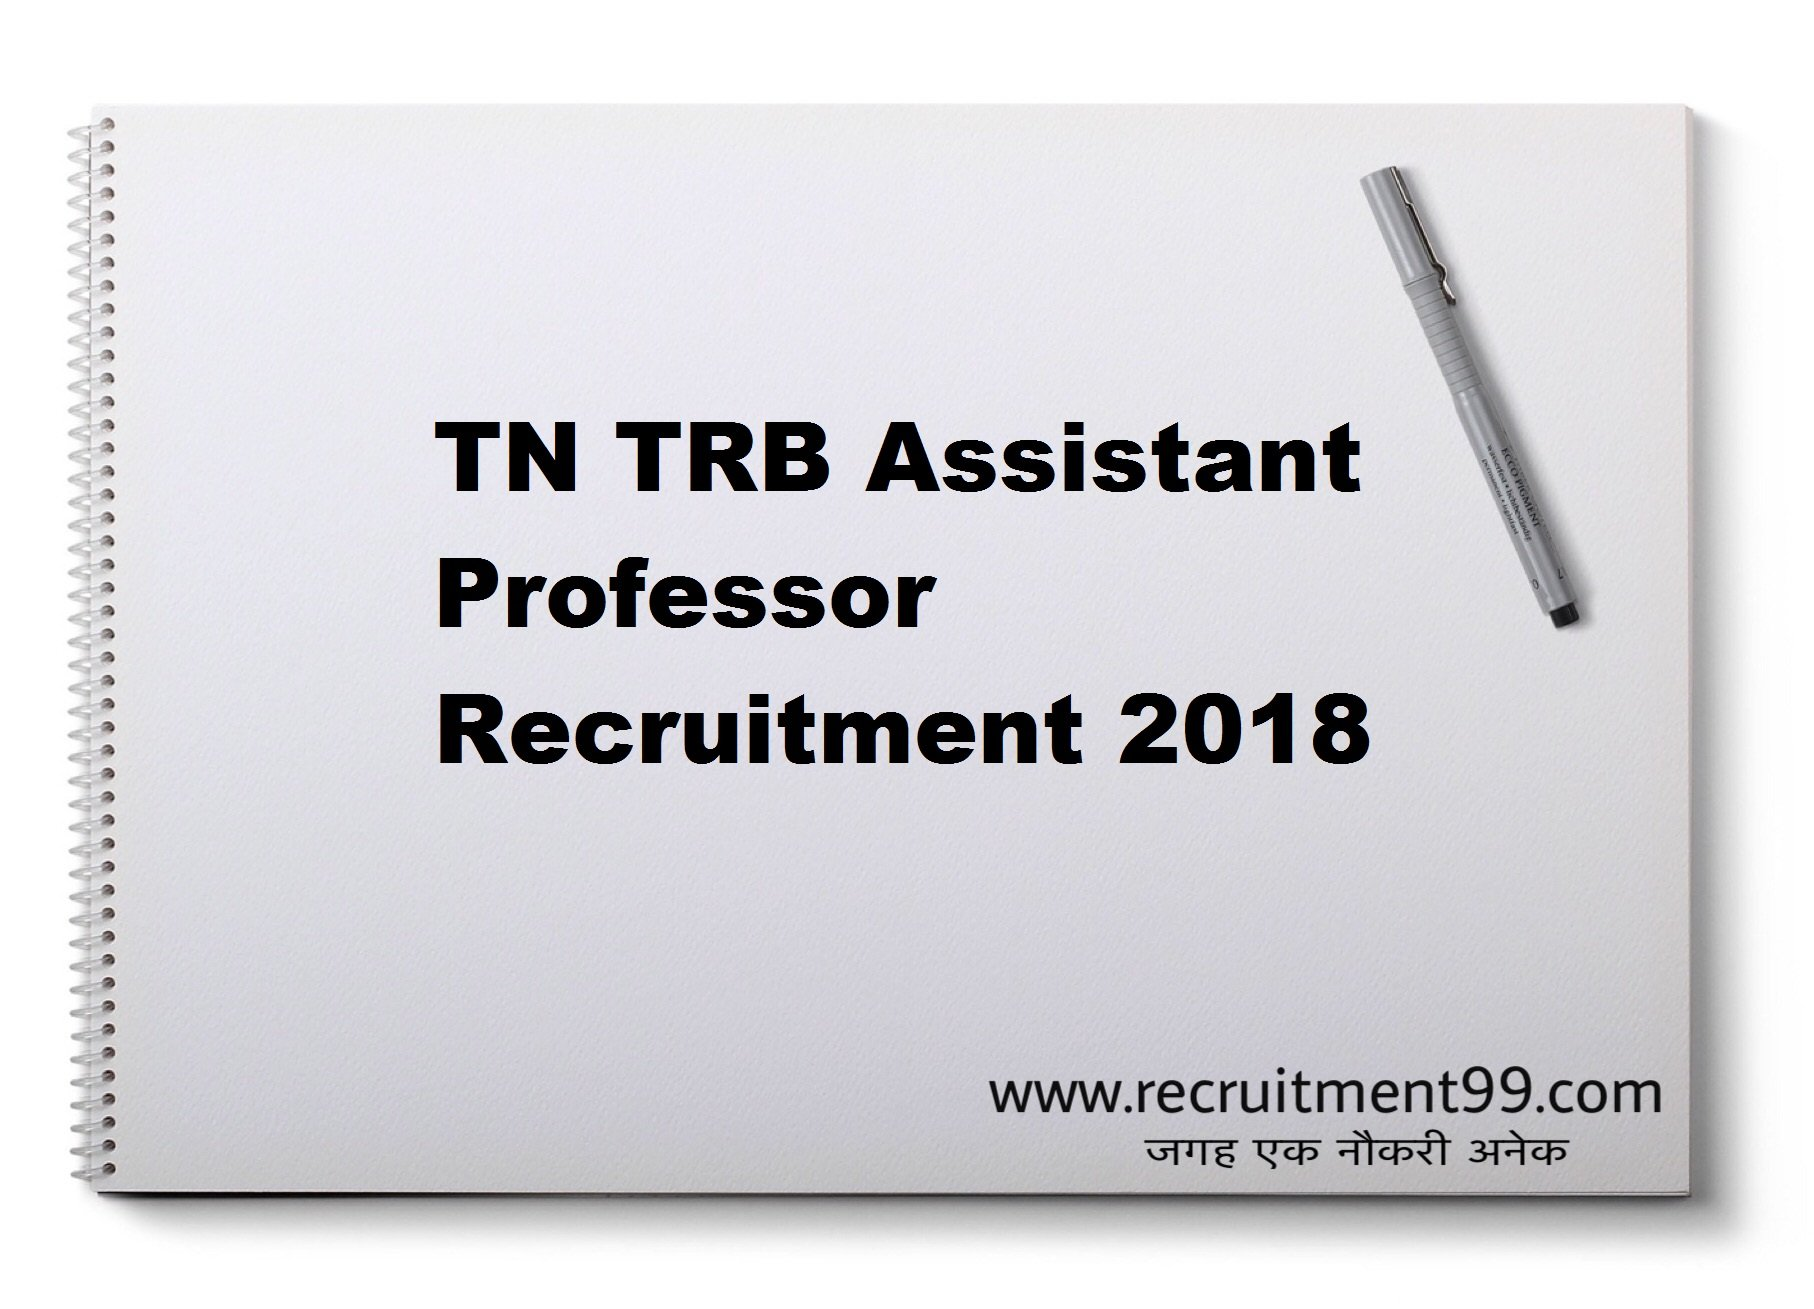 TN TRB Assistant Professor Recruitment Hall Ticket Result 2018